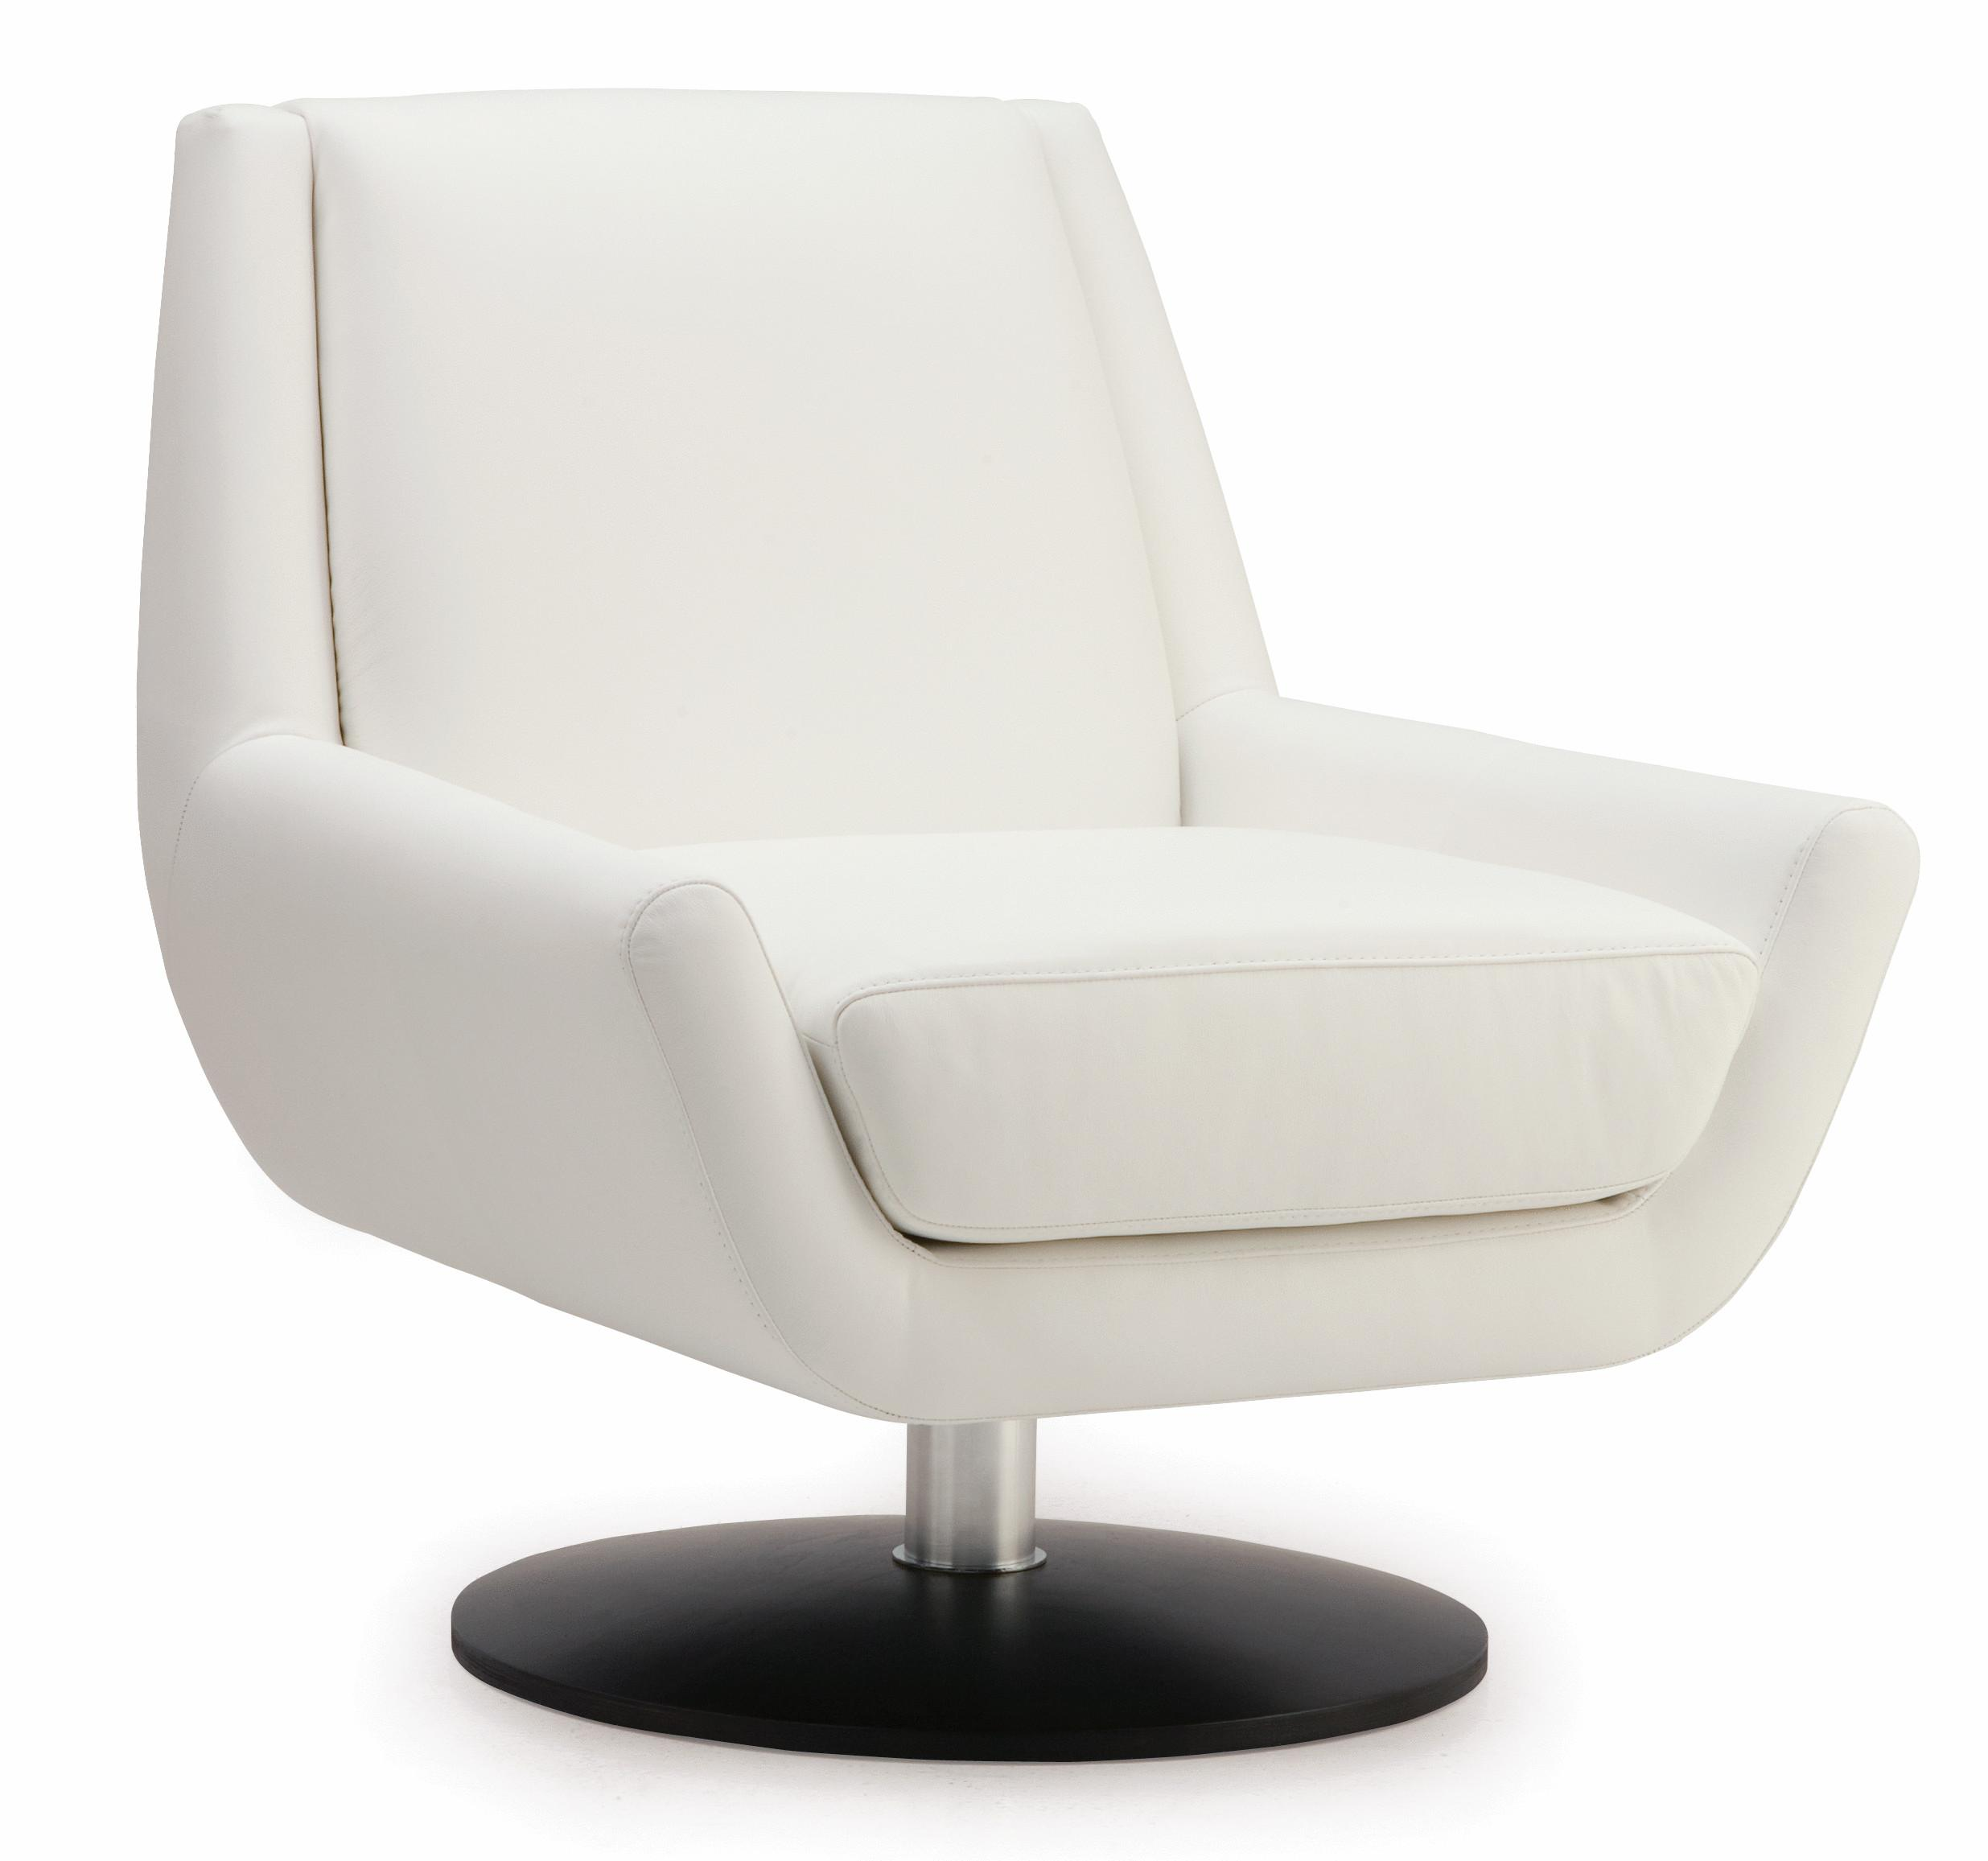 palliser plato contemporary swivel chair with metal base ahfa